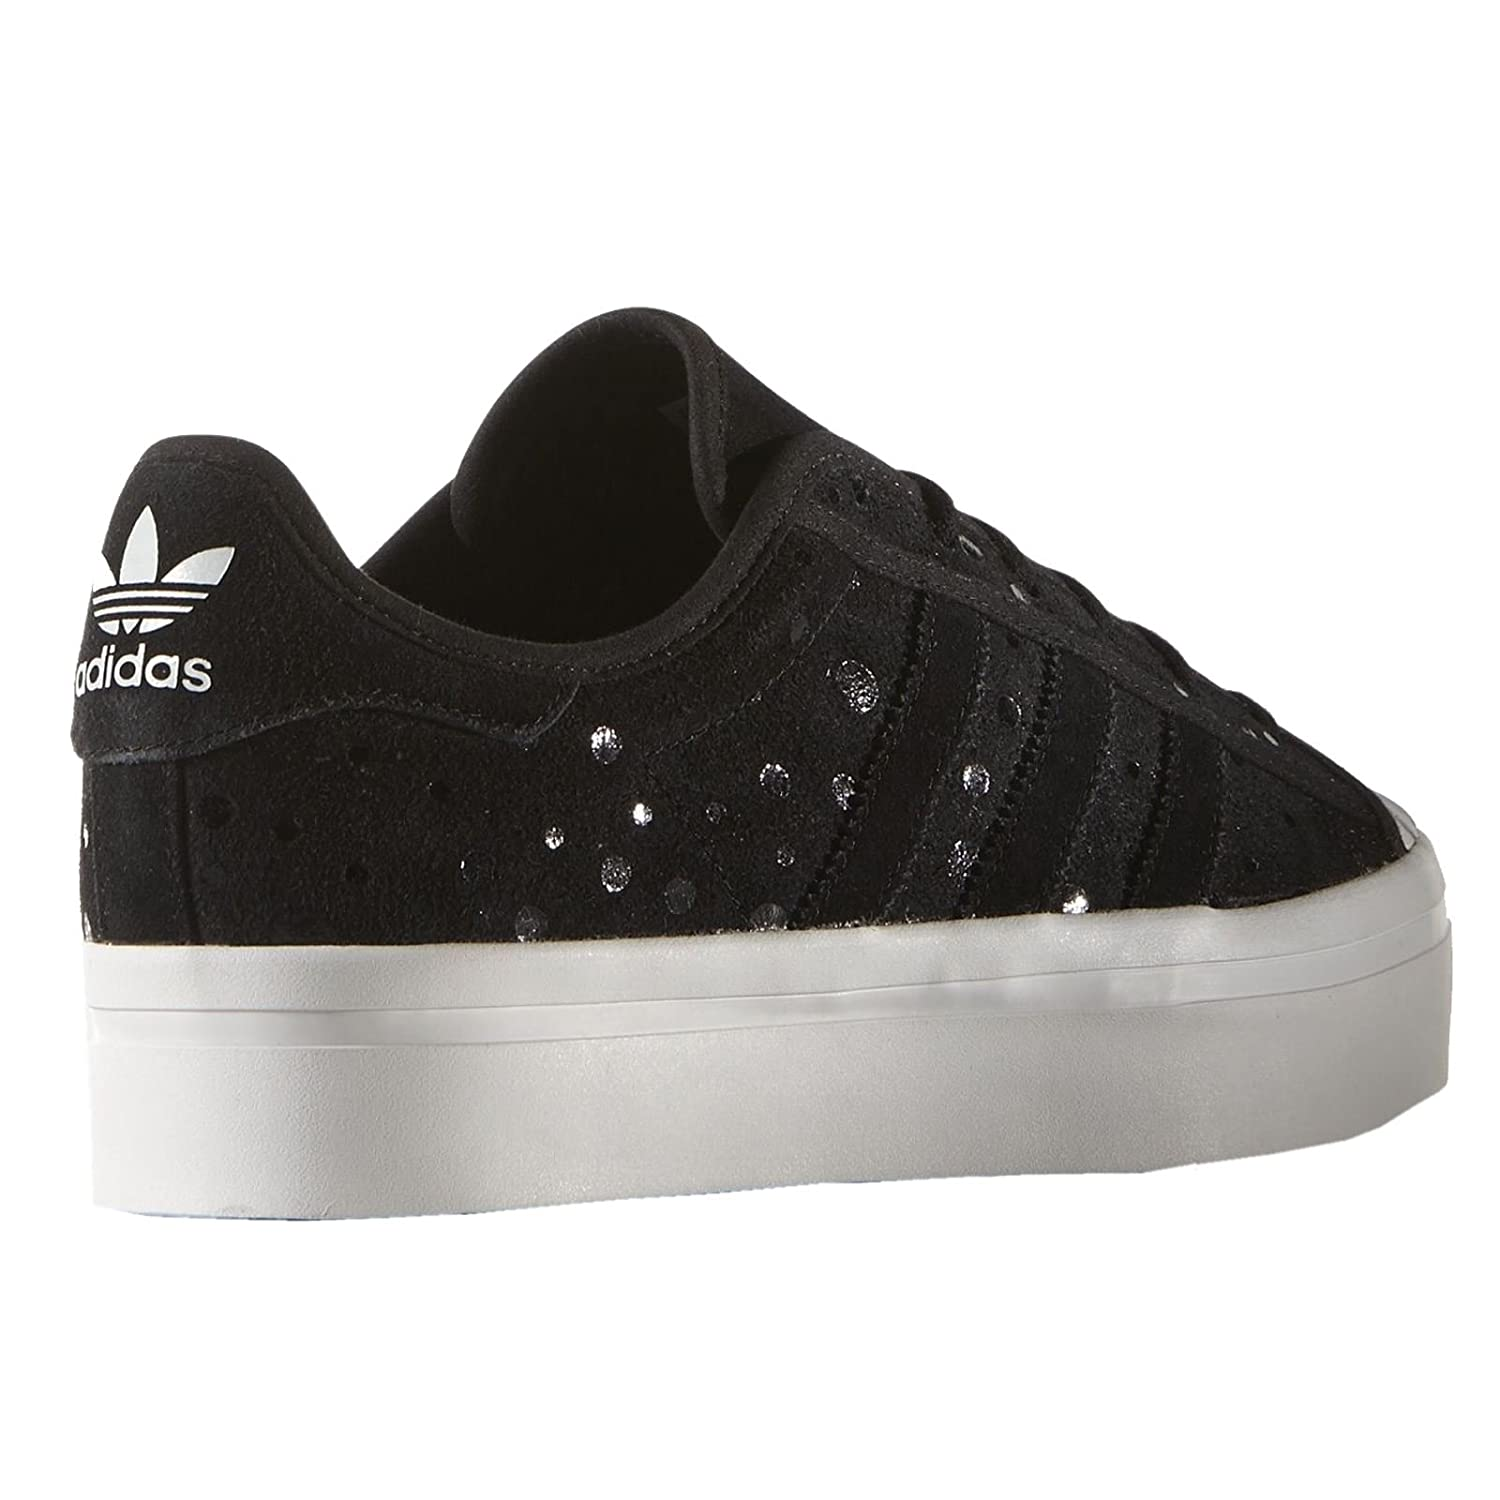 reputable site e4449 0ce4b Sale wholesale outlet 6bfd8 f381a  Adidas Superstar Rize W, negros, Adidas  blanco Black Los pun presenting 5ba17 9477a ...